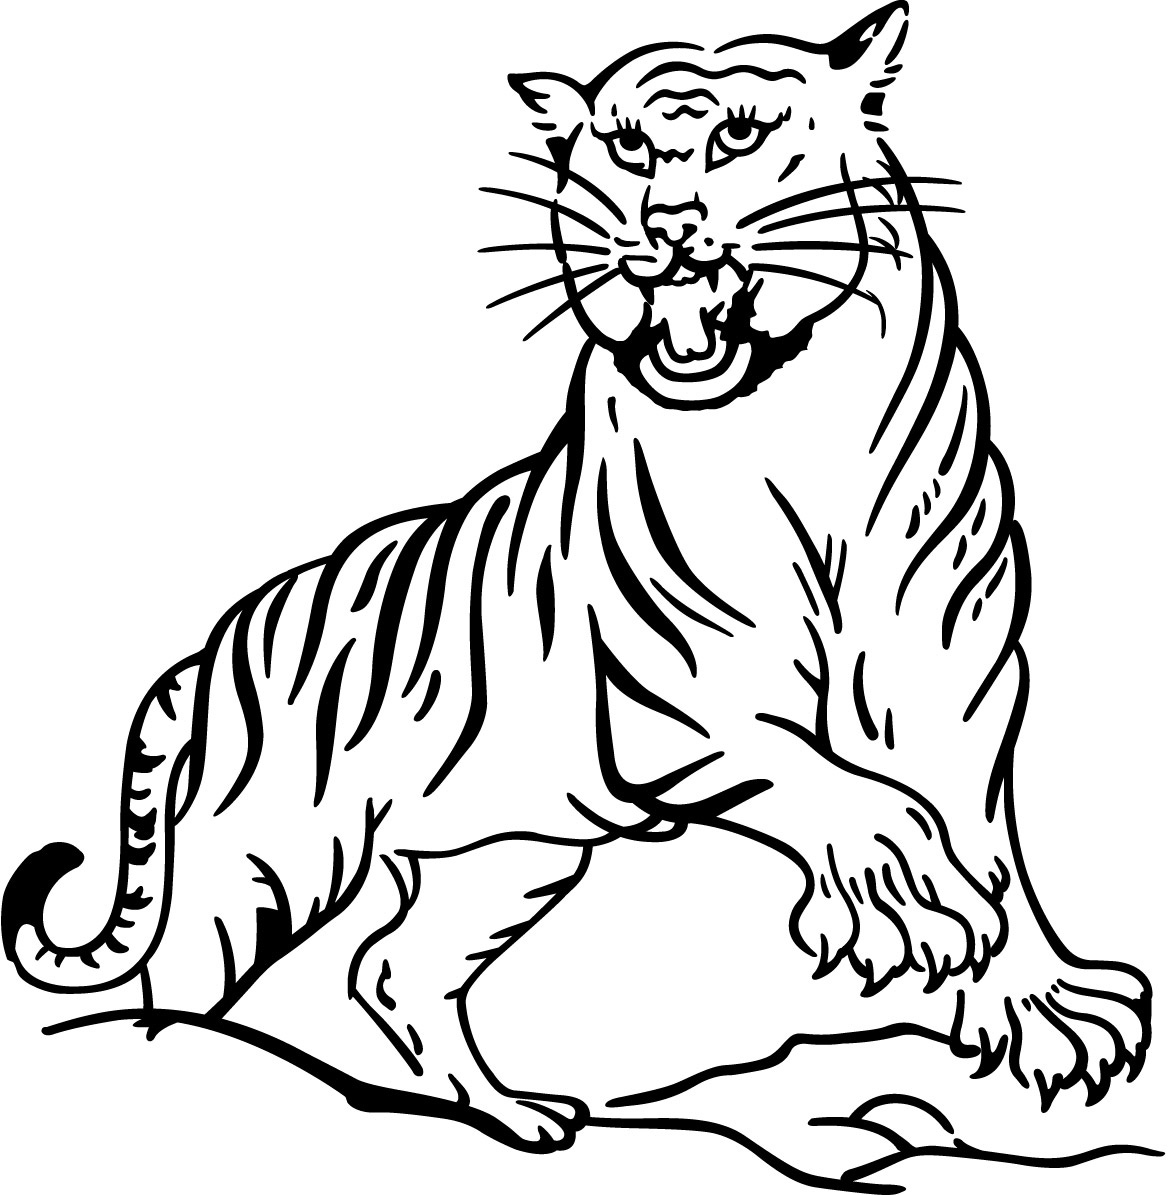 Printable coloring pages daniel tiger - Download Preschool Coloring Pages 24